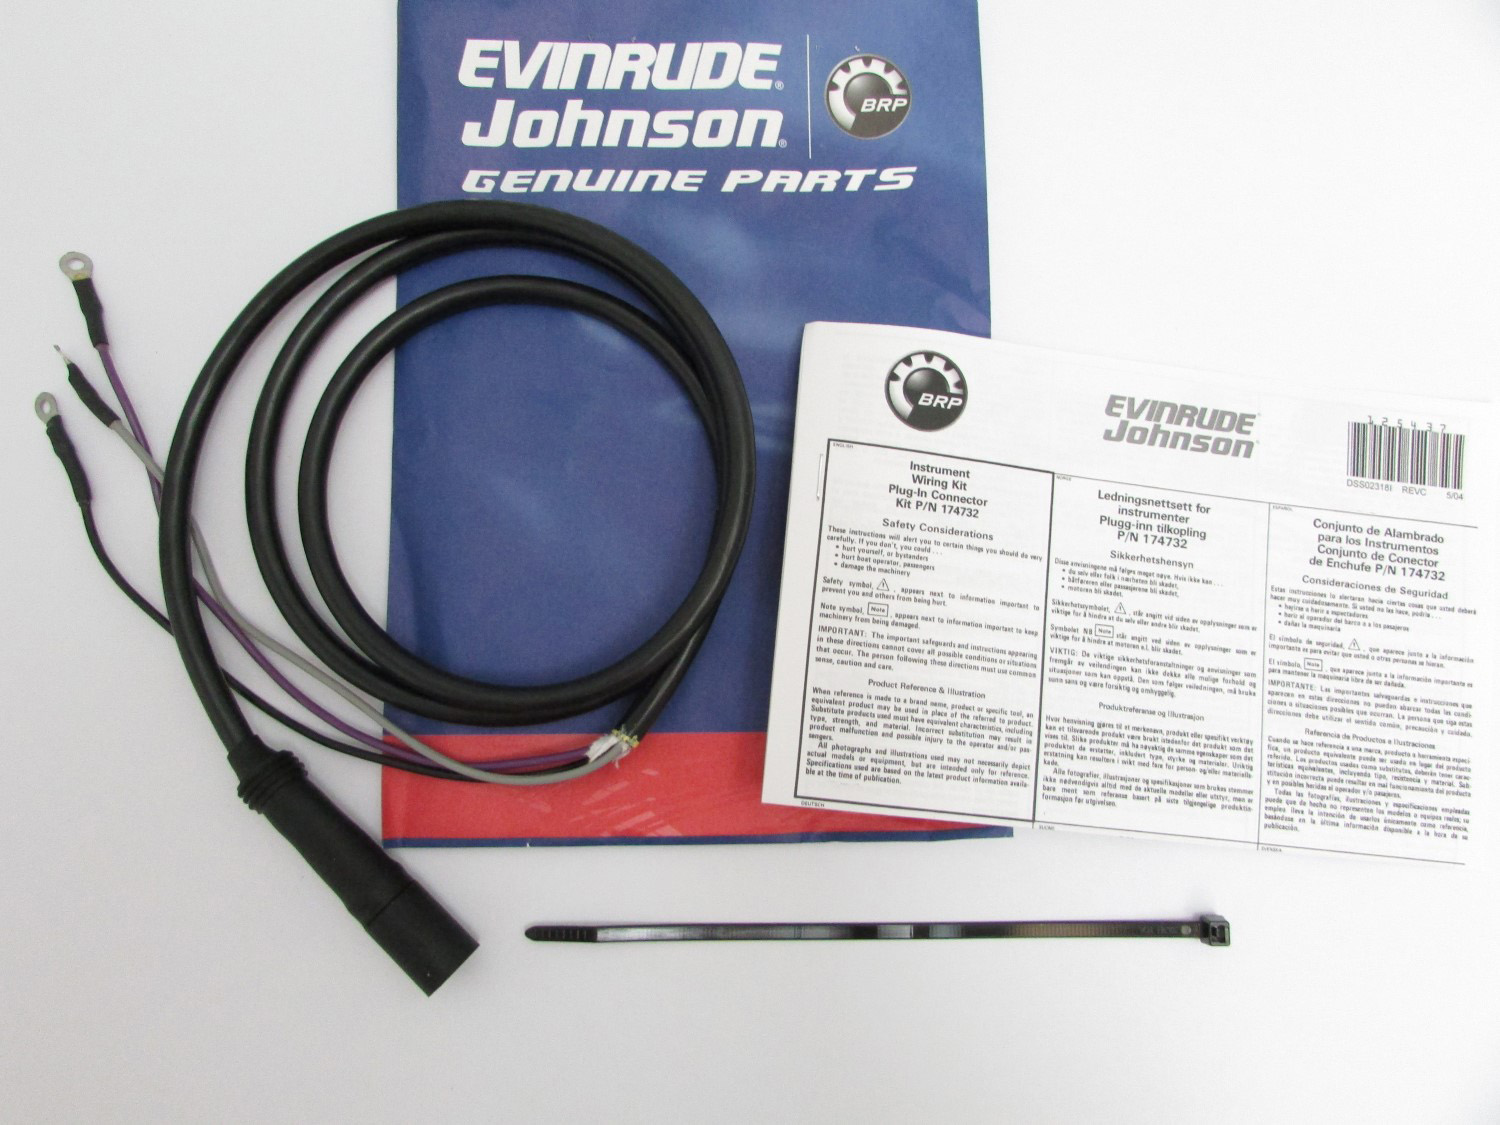 Evinrude Johnson Omc New Oem Instrument Tach Wiring Harness 174732 John Deere H Image Is Loading